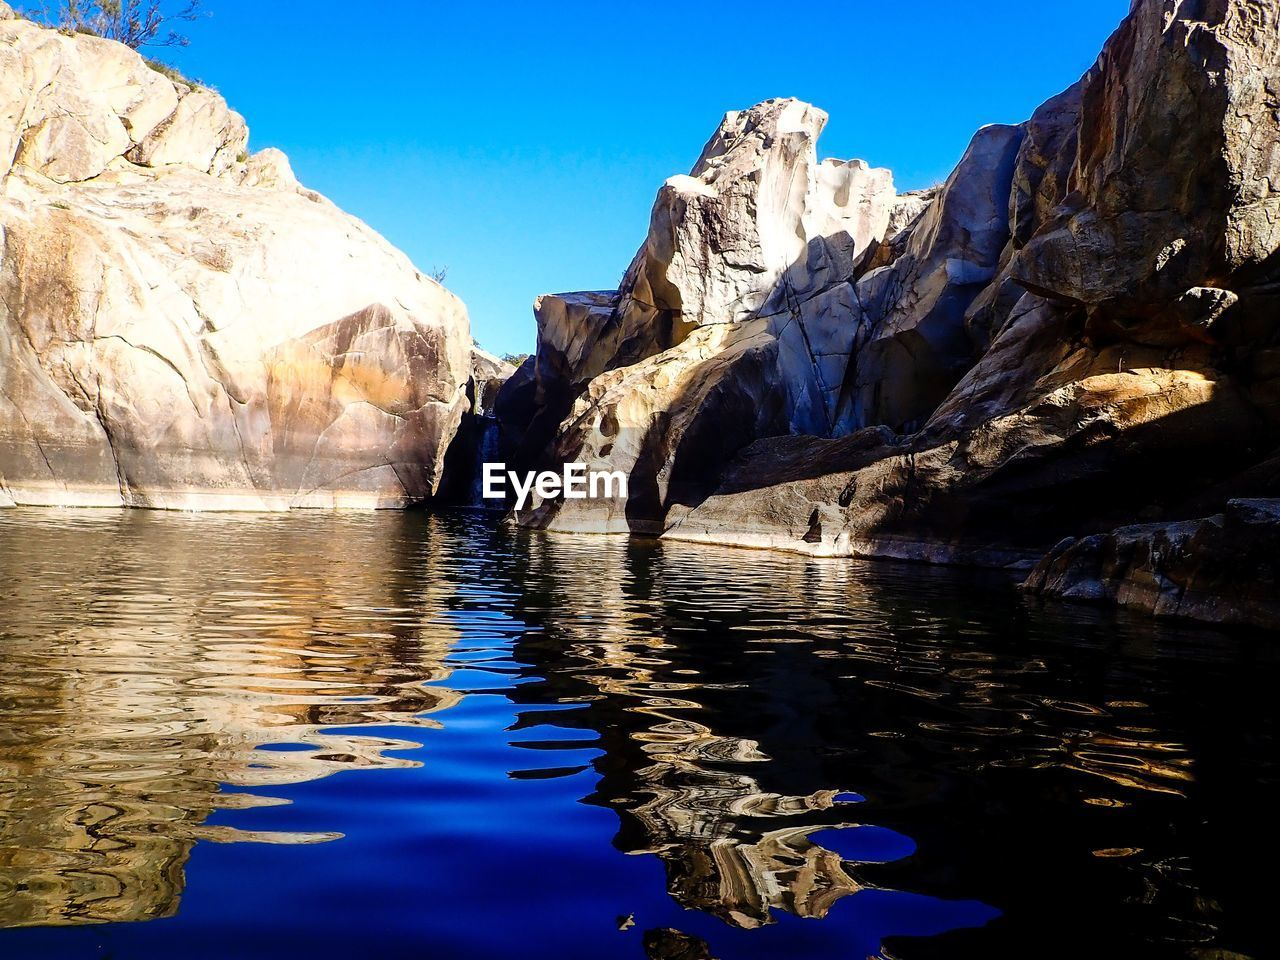 water, rock, reflection, sky, beauty in nature, rock - object, scenics - nature, rock formation, nature, solid, waterfront, tranquil scene, blue, tranquility, no people, non-urban scene, day, lake, clear sky, outdoors, eroded, formation